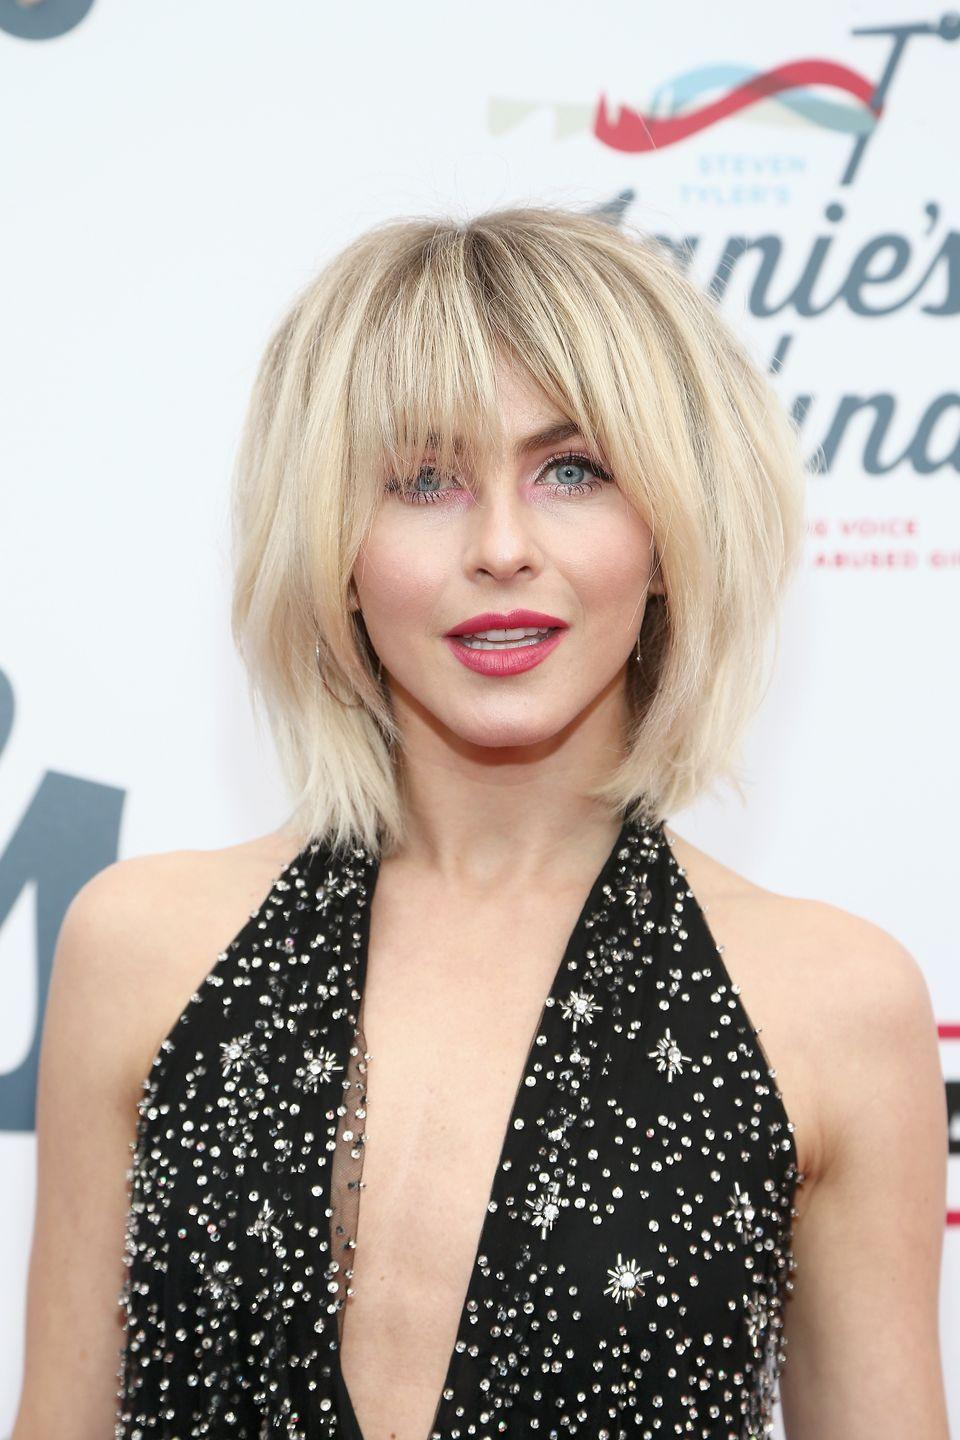 """<p>If you're going for more 0f a '60s-chic look, a sharp <a href=""""https://www.goodhousekeeping.com/beauty/hair/g2449/shag-haircuts-ideas/"""" rel=""""nofollow noopener"""" target=""""_blank"""" data-ylk=""""slk:shag haircut"""" class=""""link rapid-noclick-resp"""">shag haircut</a> with bangs is the perfect blend of retro and modern — and will totally look effortless and trendy no matter what kind of hair day you're having. </p><p><strong>RELATED: </strong><a href=""""https://www.goodhousekeeping.com/beauty/hair/g2703/vintage-hair-makeup-trends-now/"""" rel=""""nofollow noopener"""" target=""""_blank"""" data-ylk=""""slk:50 Vintage Beauty Trends That Are Back Again"""" class=""""link rapid-noclick-resp"""">50 Vintage Beauty Trends That Are Back Again</a></p>"""